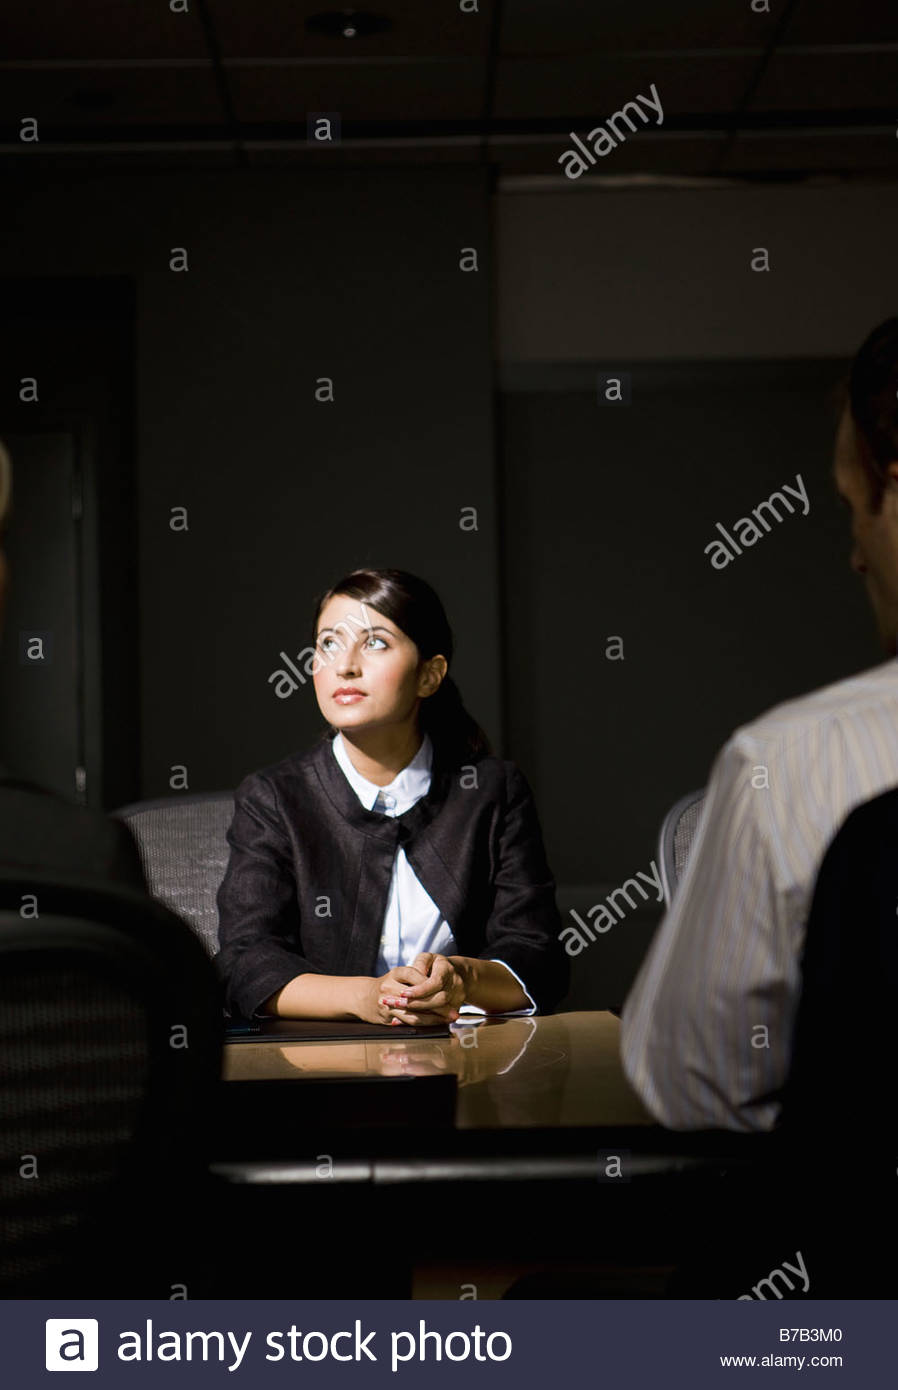 Light shining on Latin American businesswoman in conference room - Stock Image